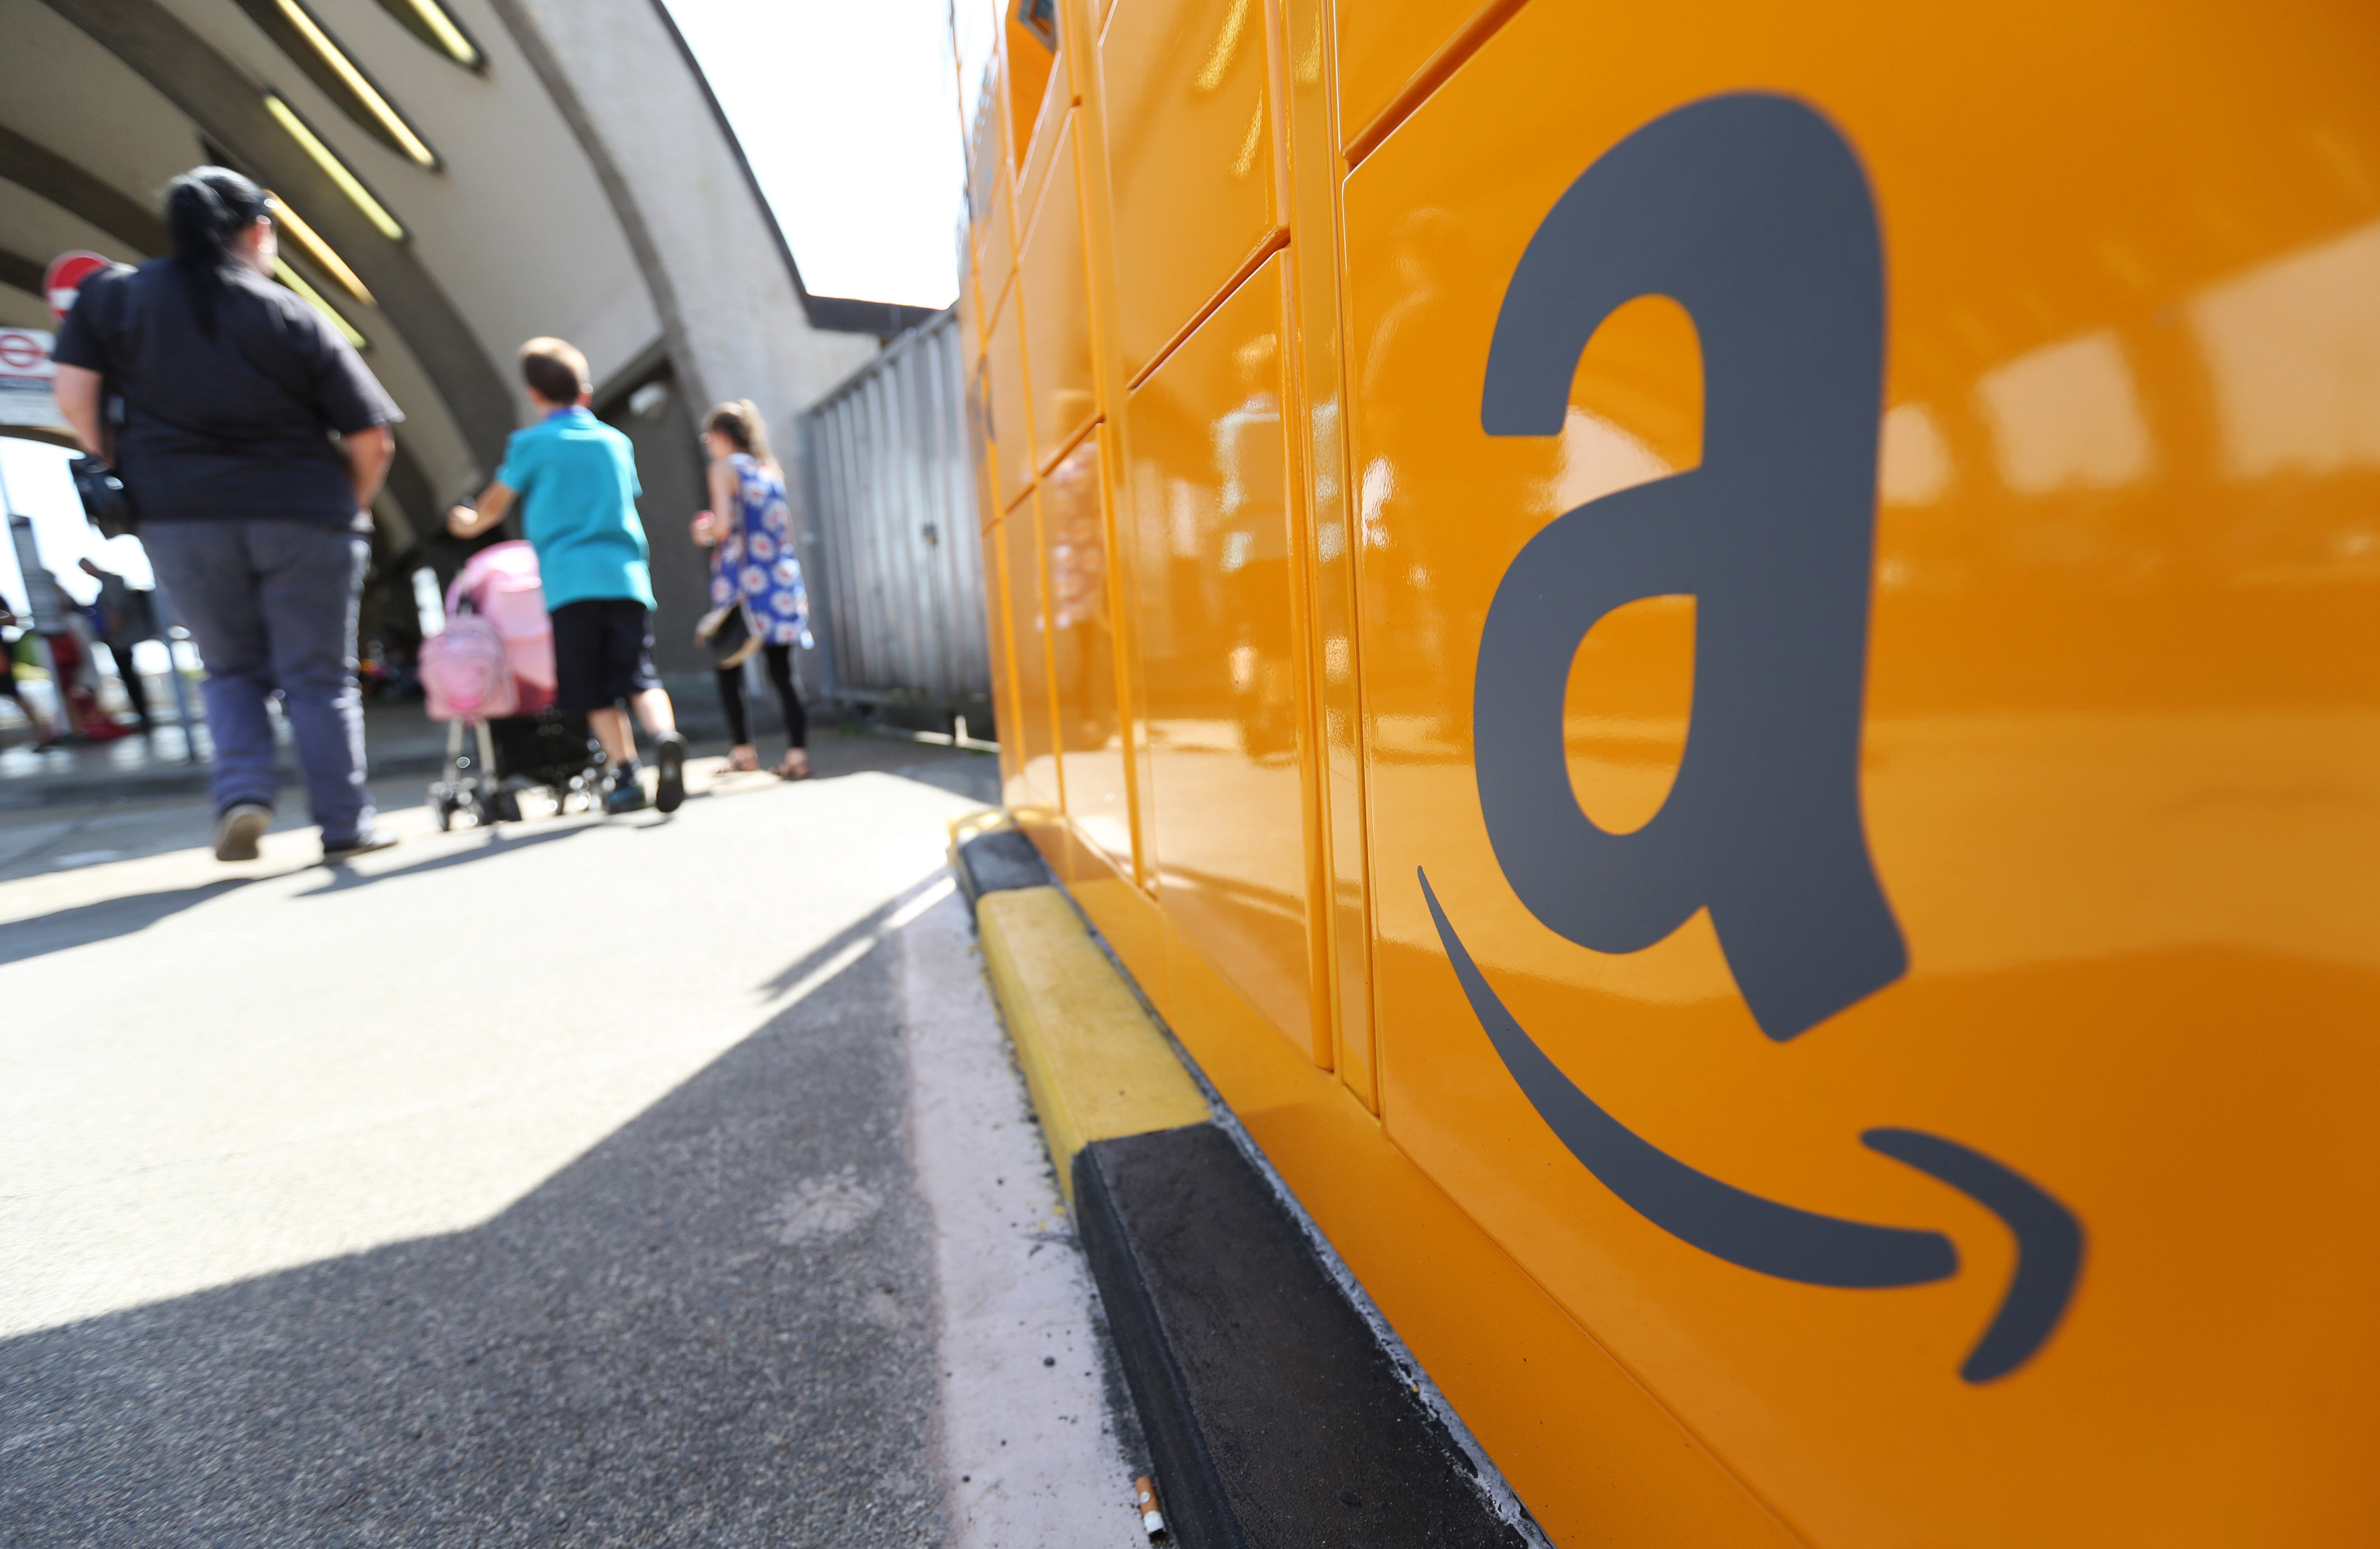 An Amazon.com Inc. pickup and collect locker at Newbury Park railway station in Newbury Park, U.K., on Wednesday, July 23, 2014.